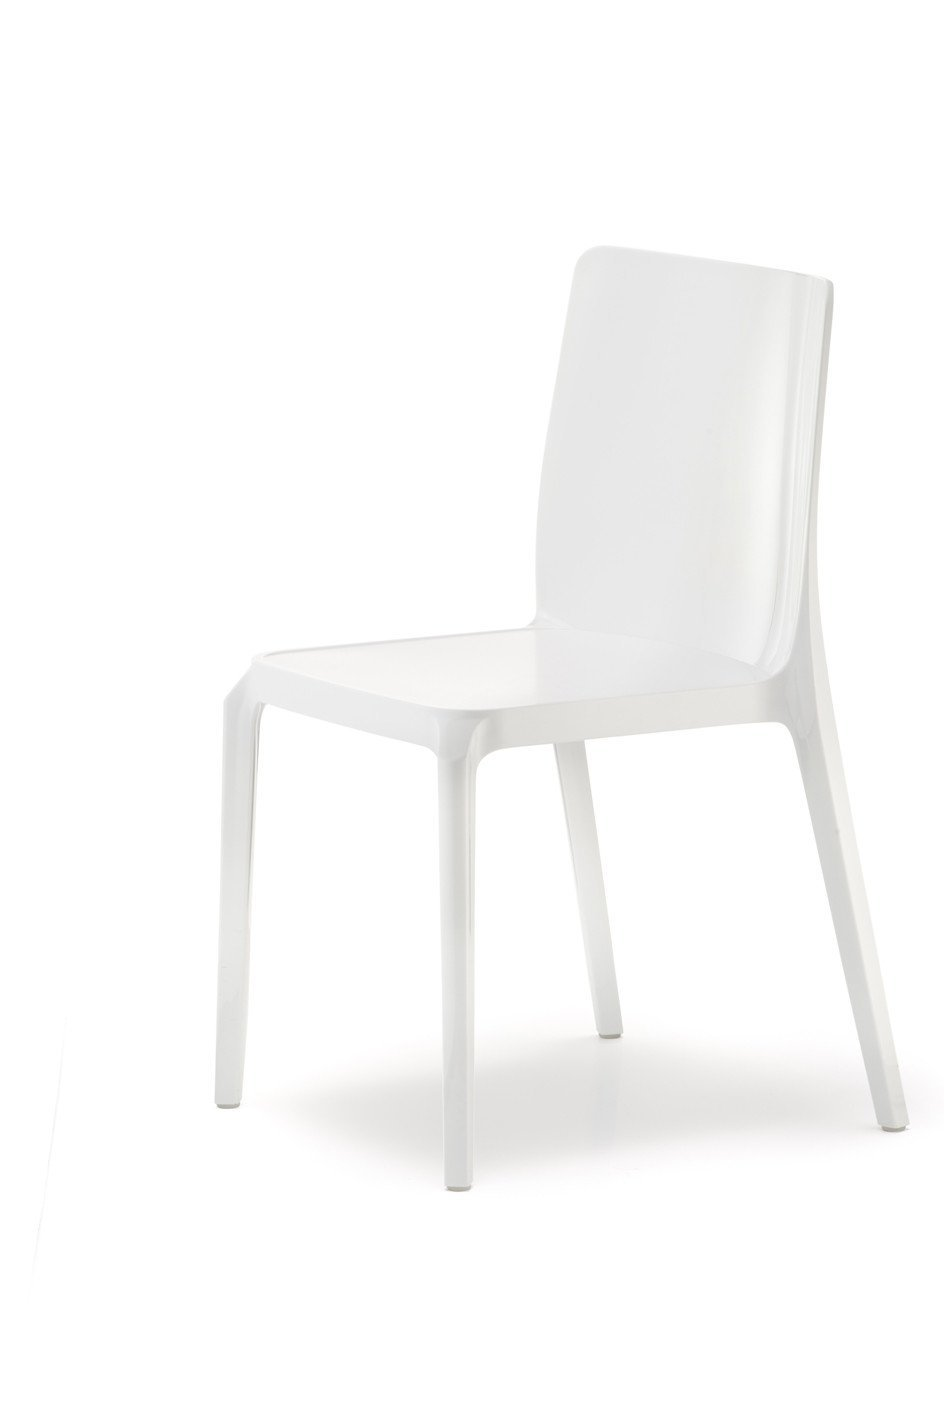 Blitz 640 Side Chair-Pedrali-Contract Furniture Store